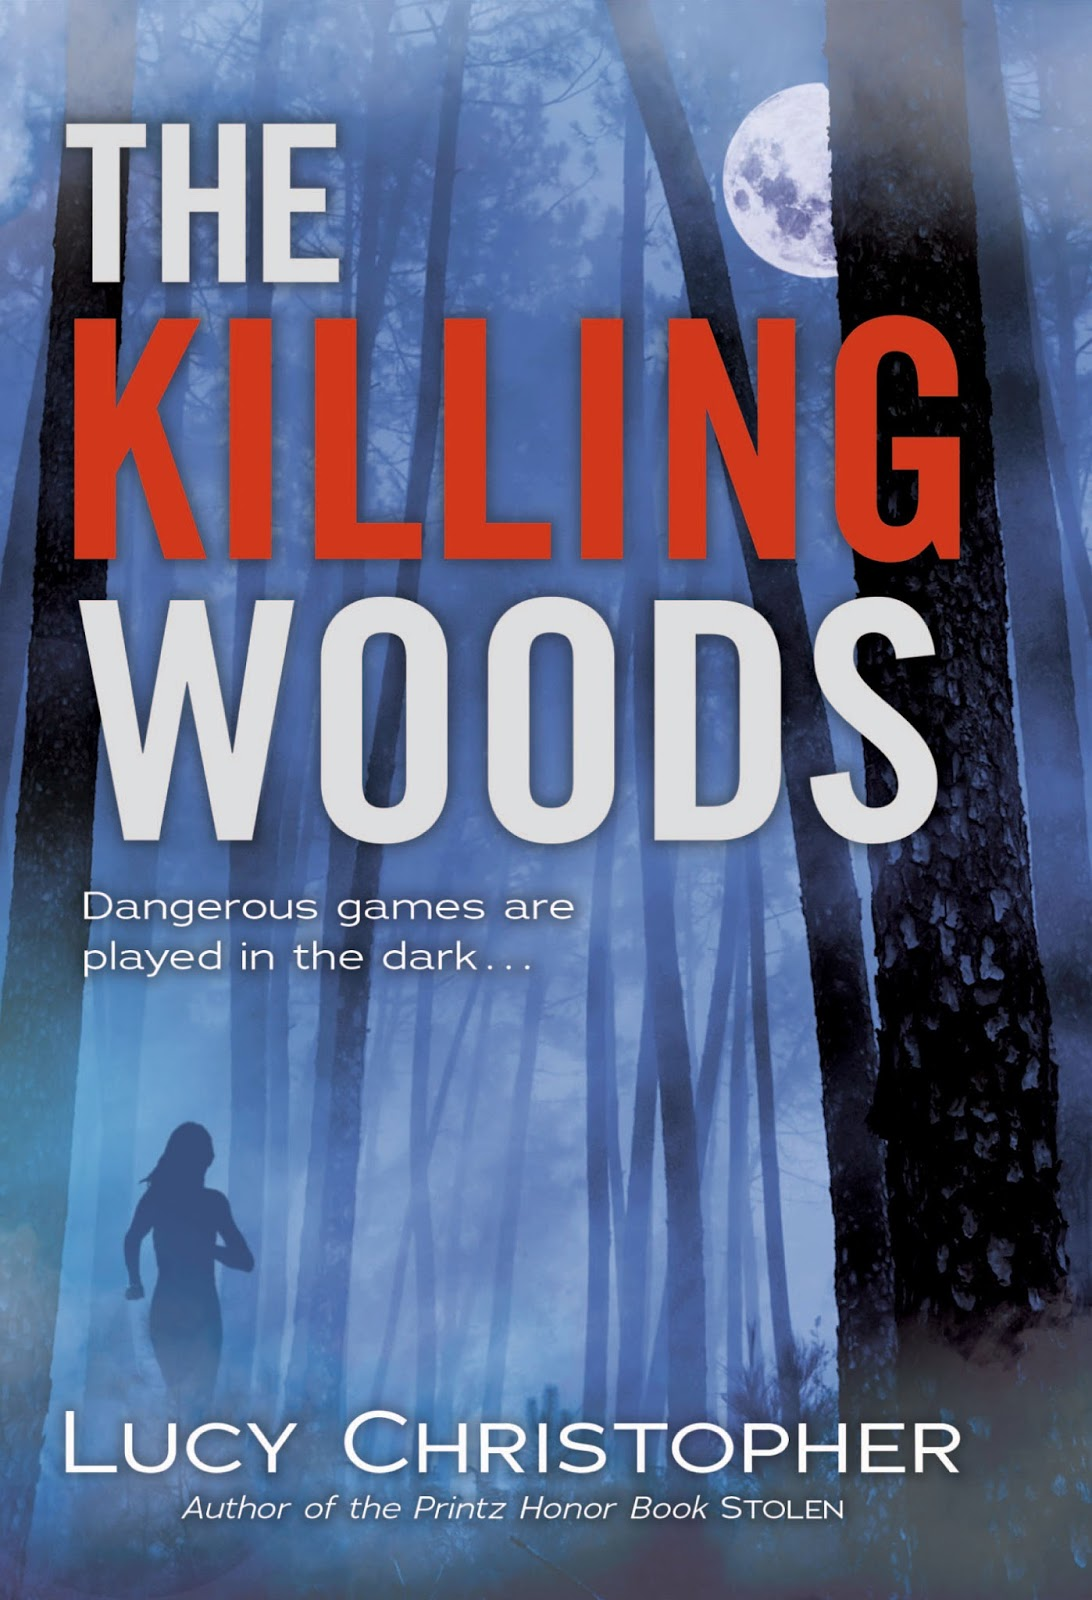 The Killing Woods by Lucy Christopher